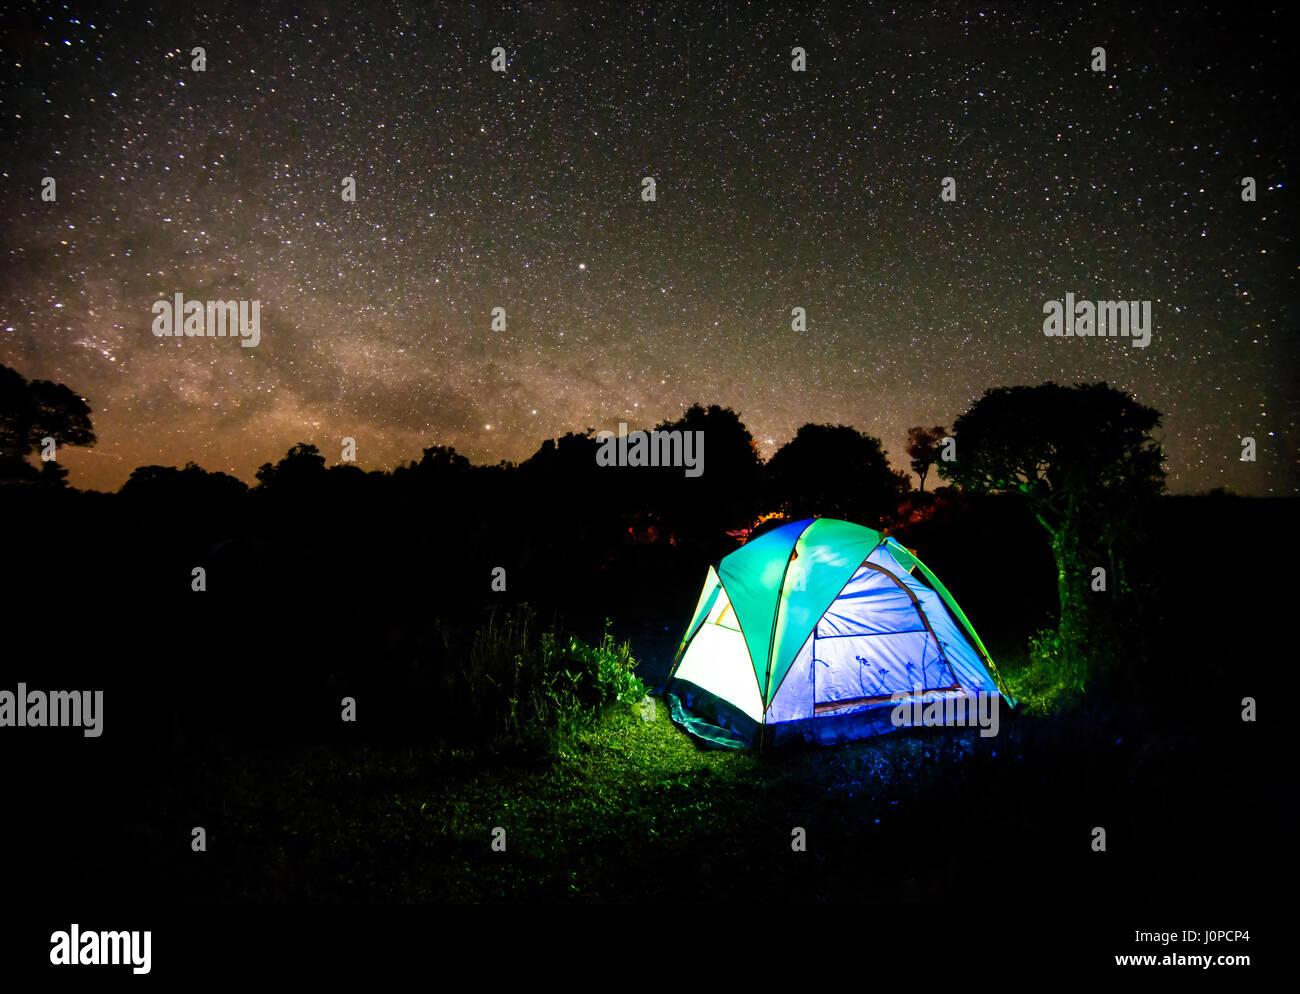 Camping Tent Under Night Sky Stars With Milky Way Background